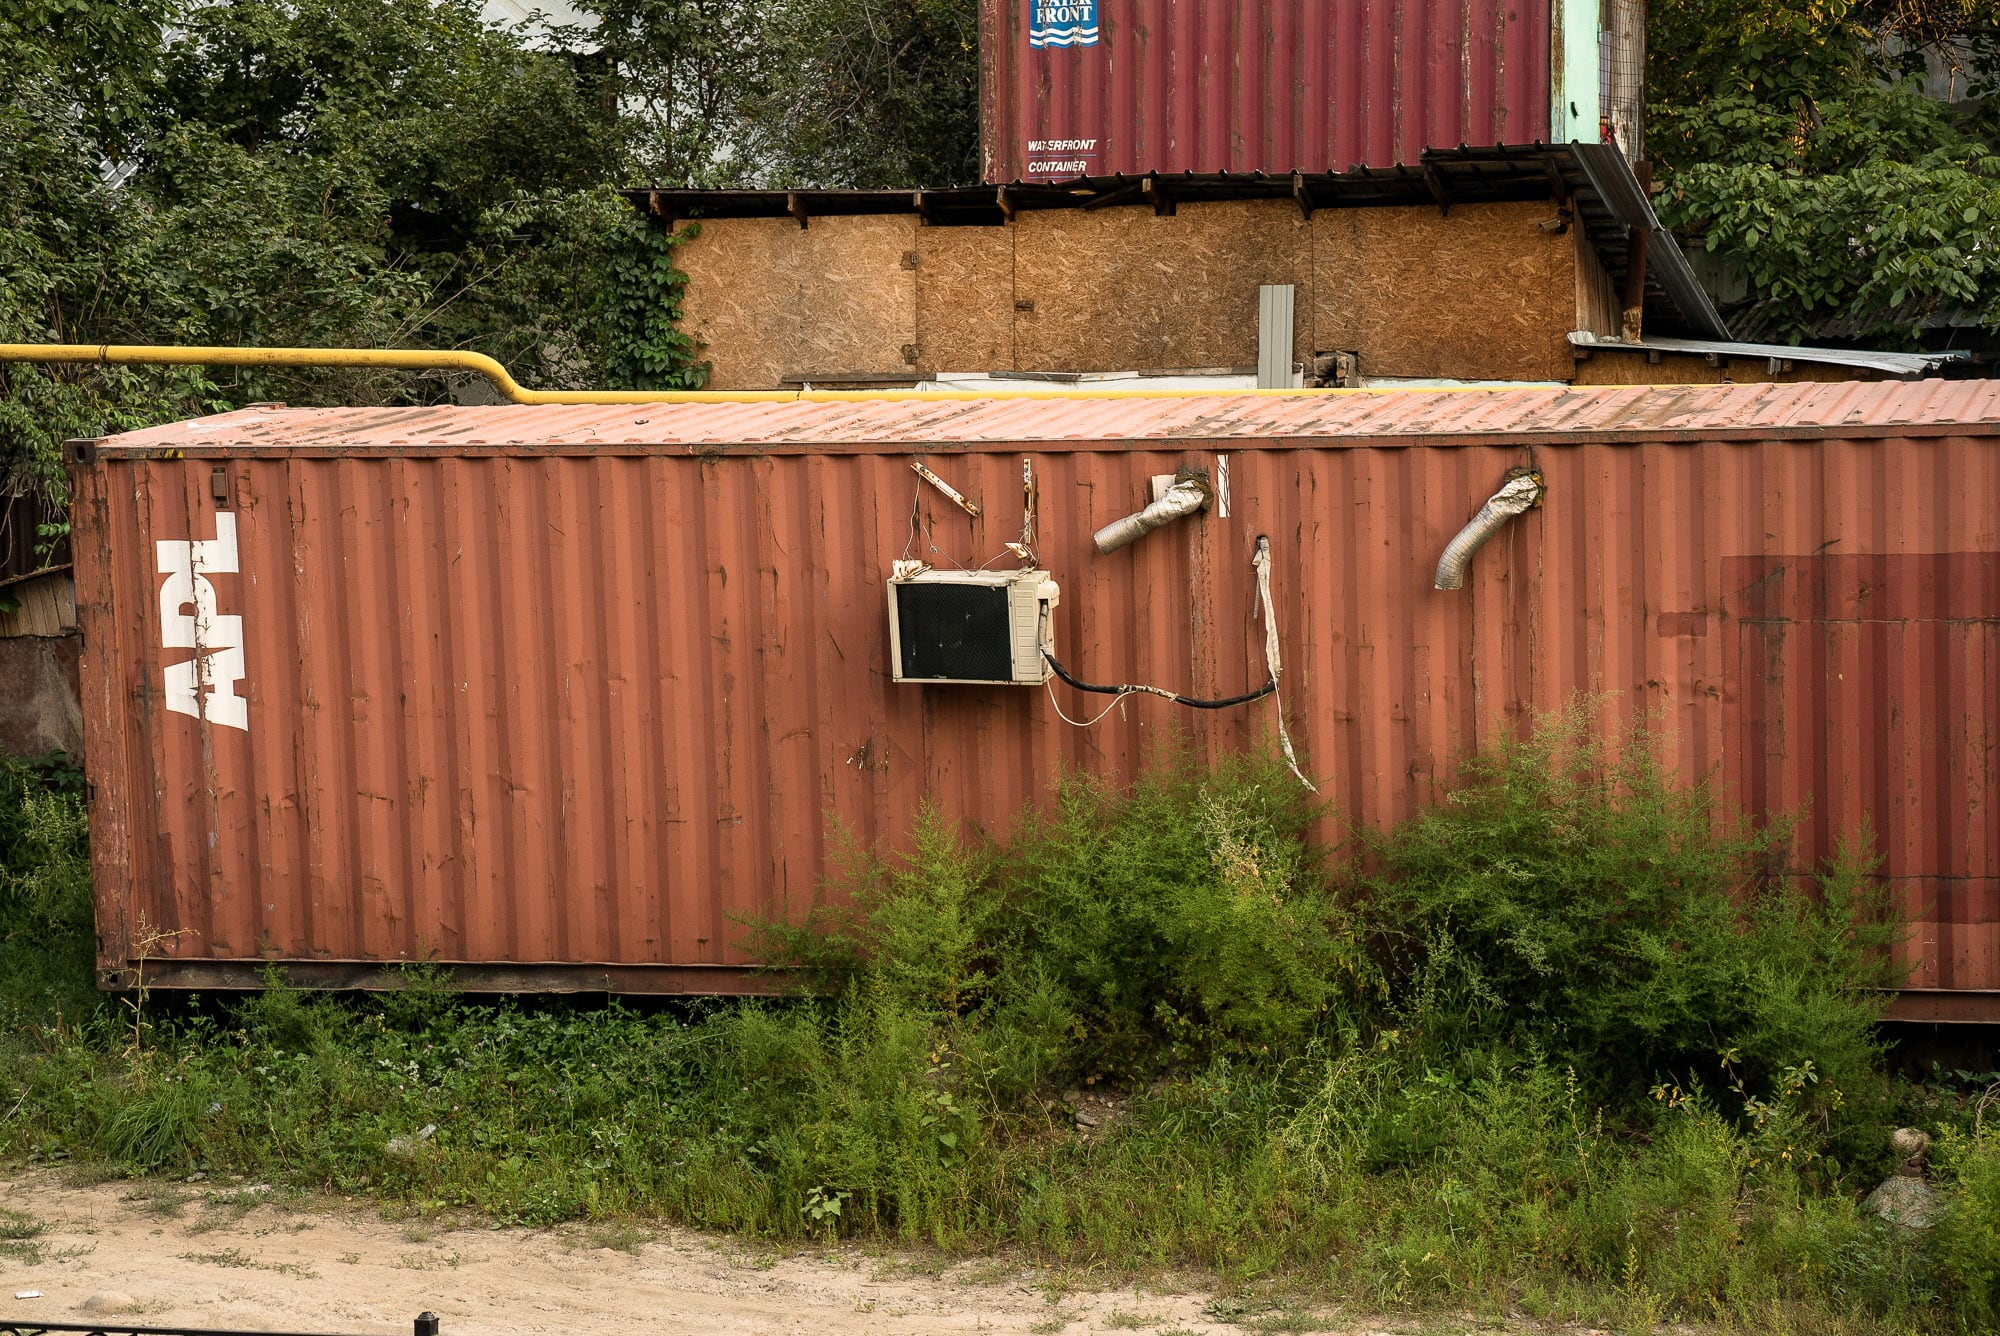 container with a/c